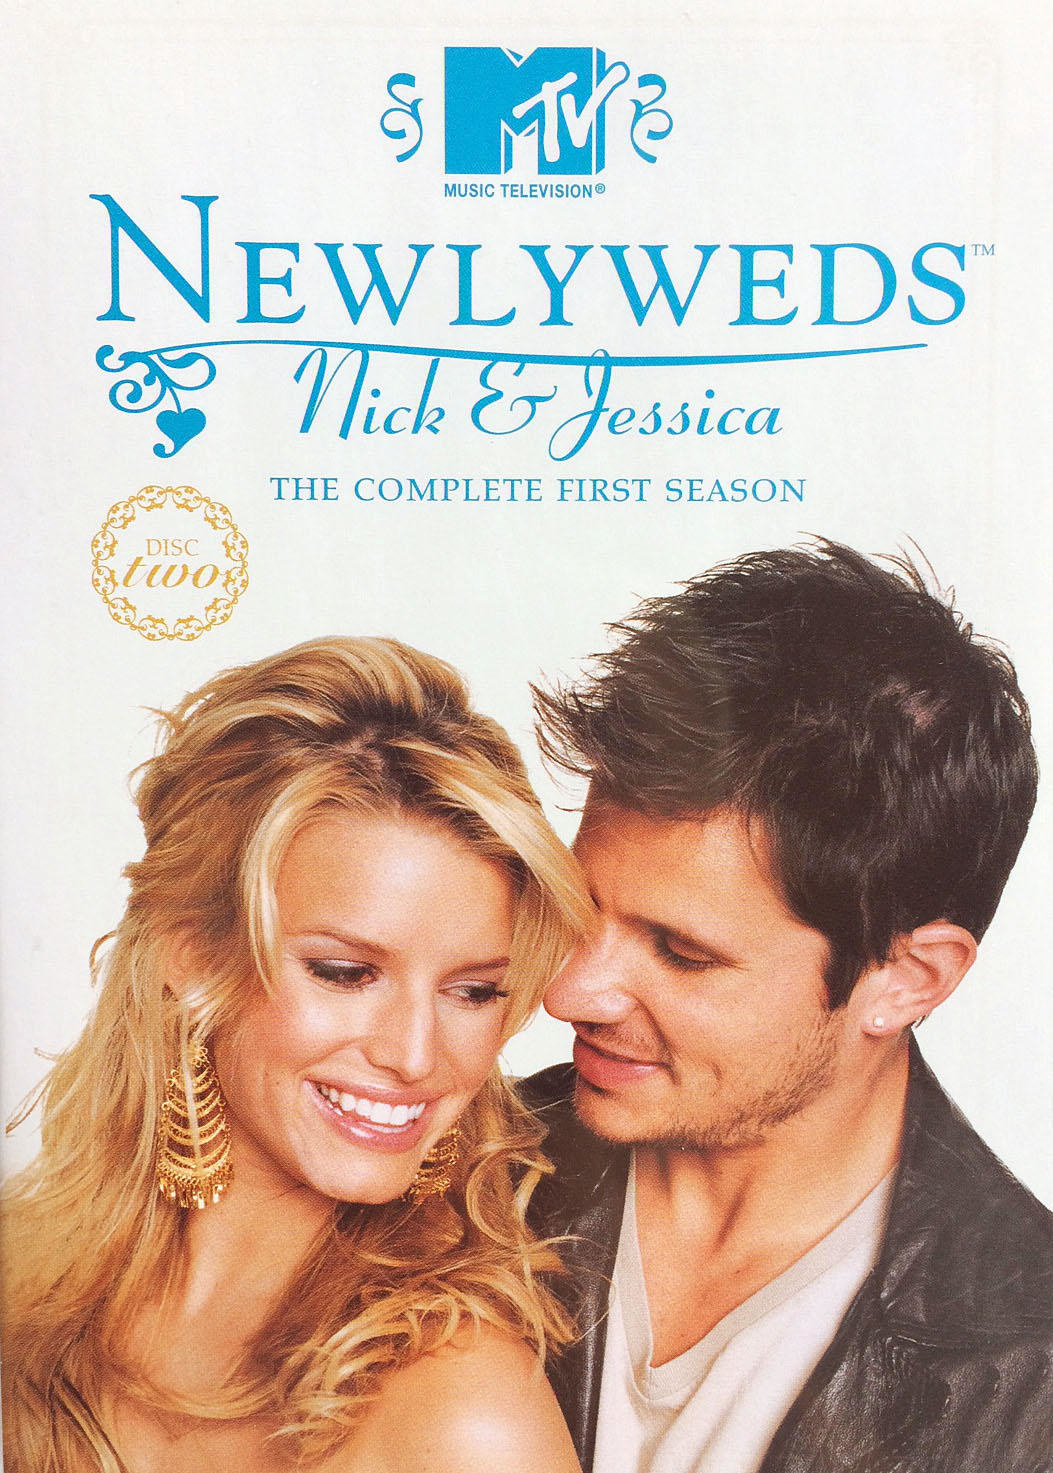 The poster of Nick and Jessica's show